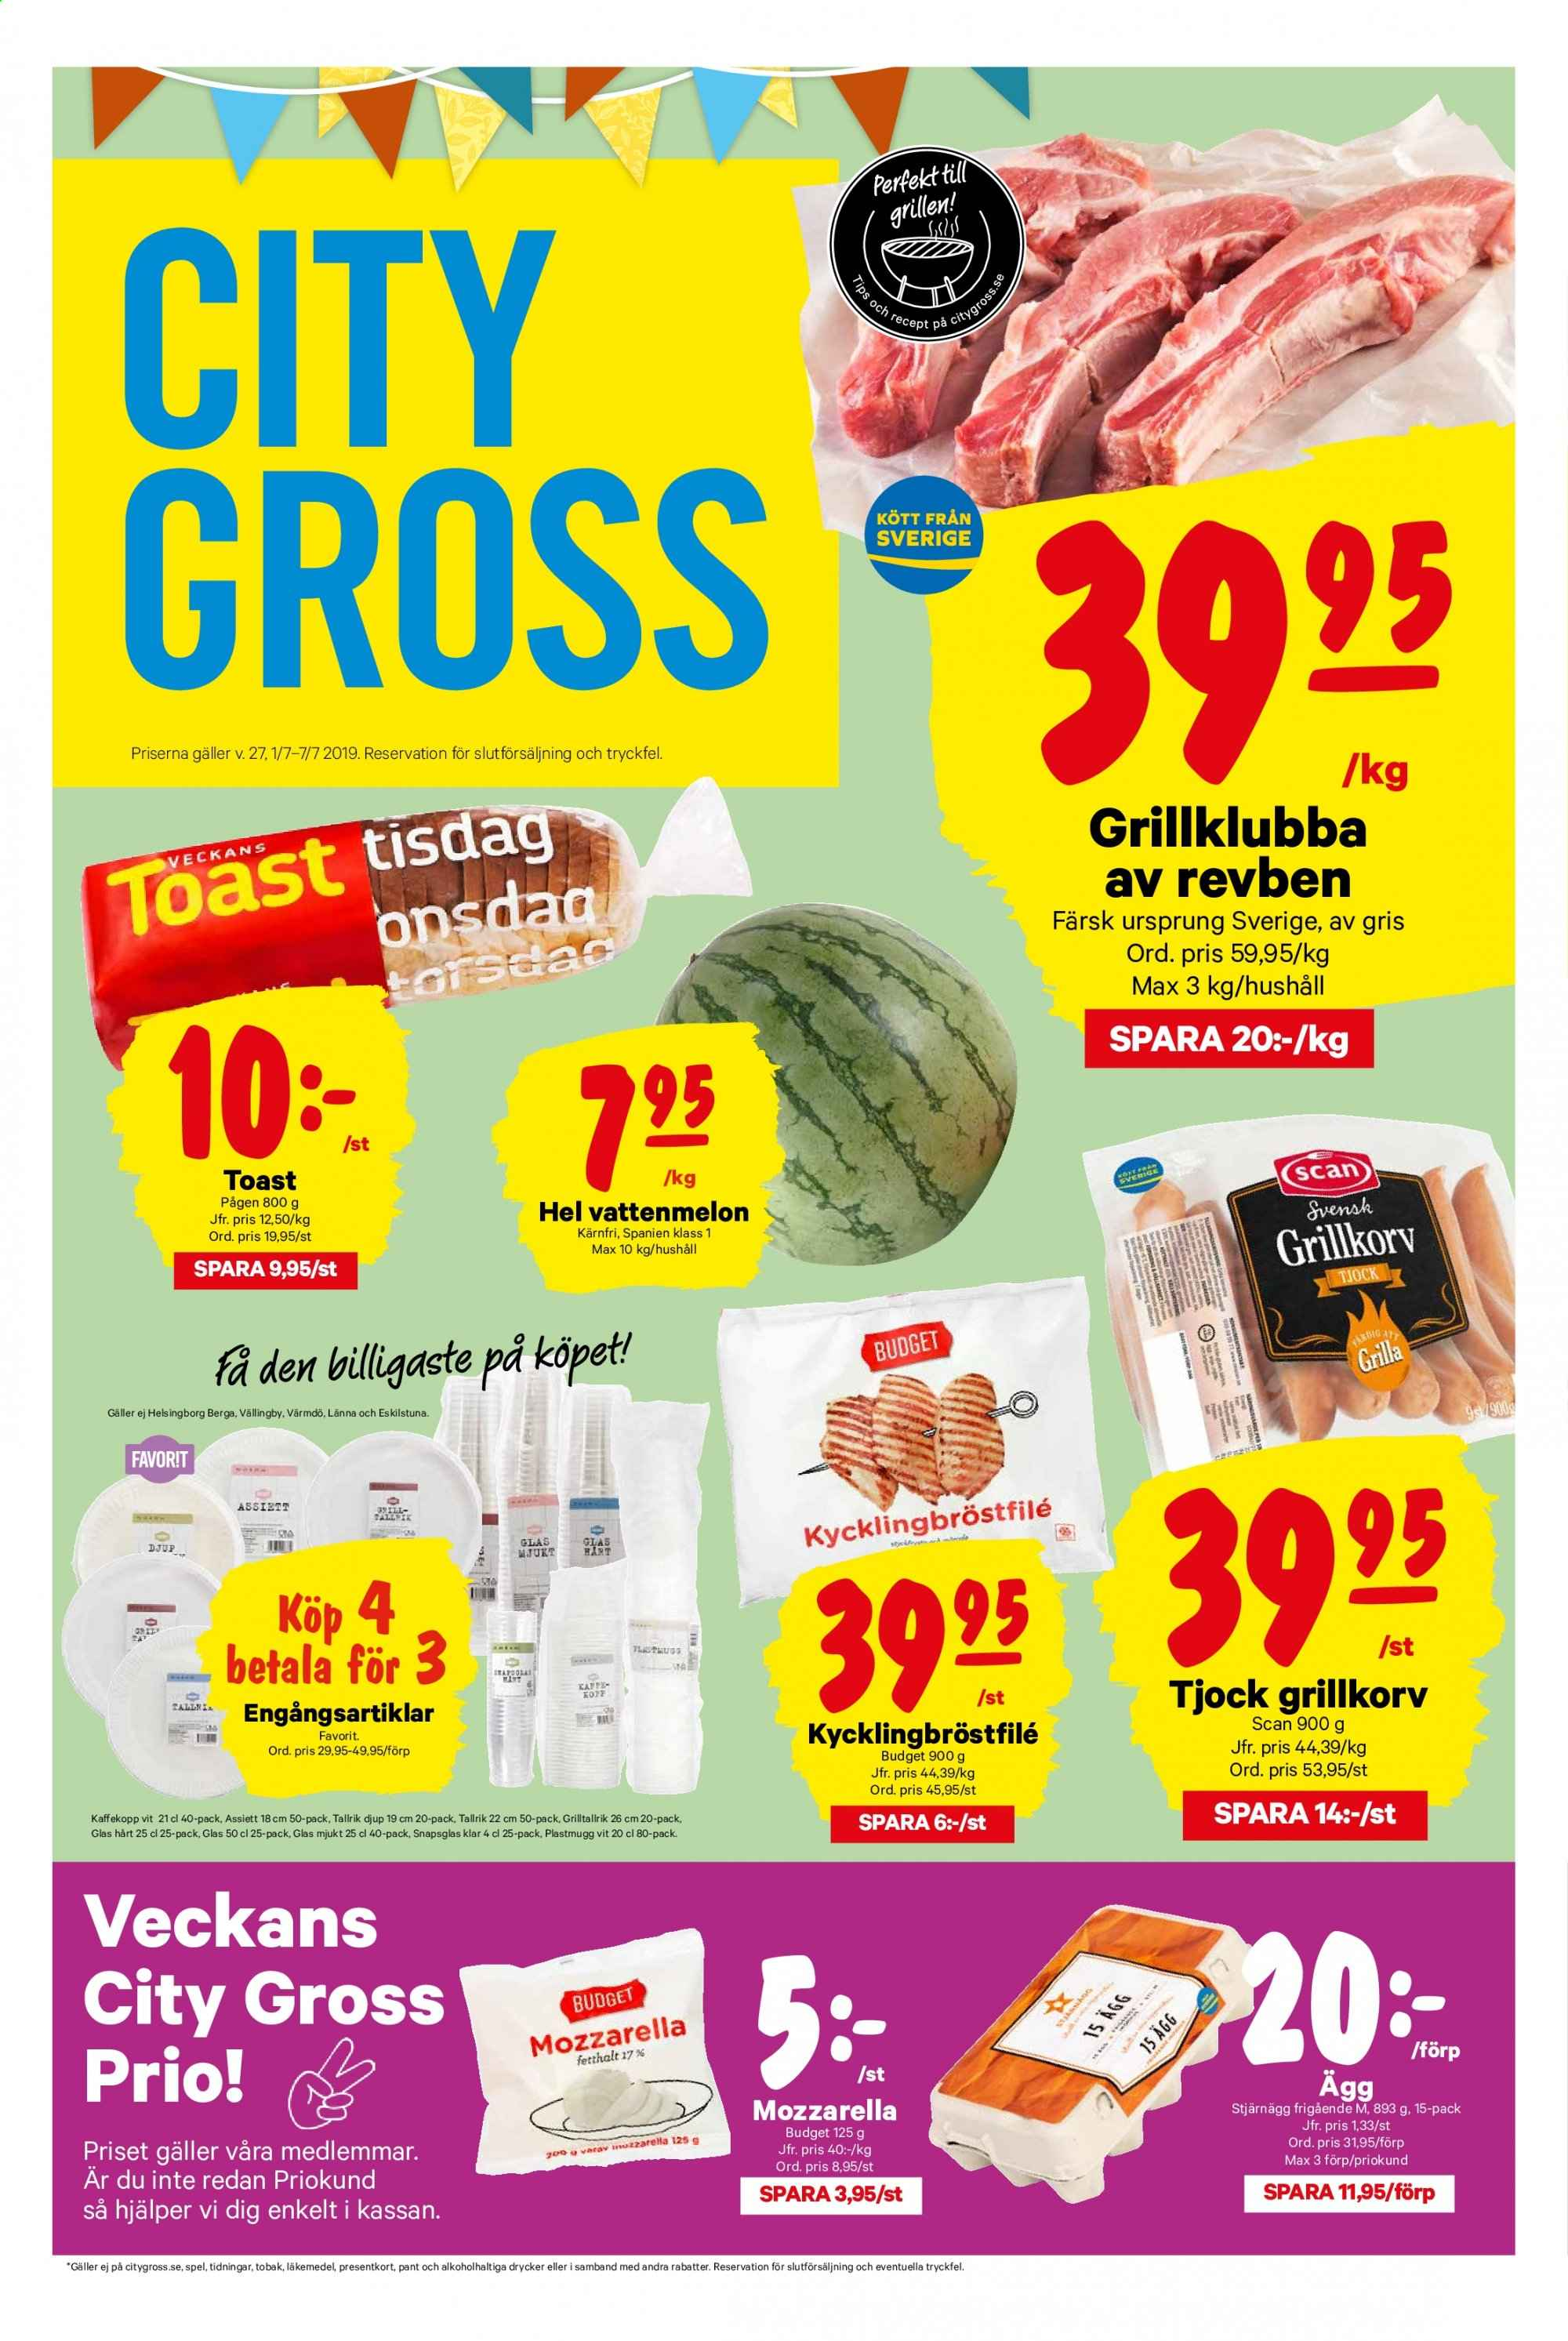 City Gross reklamblad - 1/7 2019 - 1/7 2019. Sida 1.